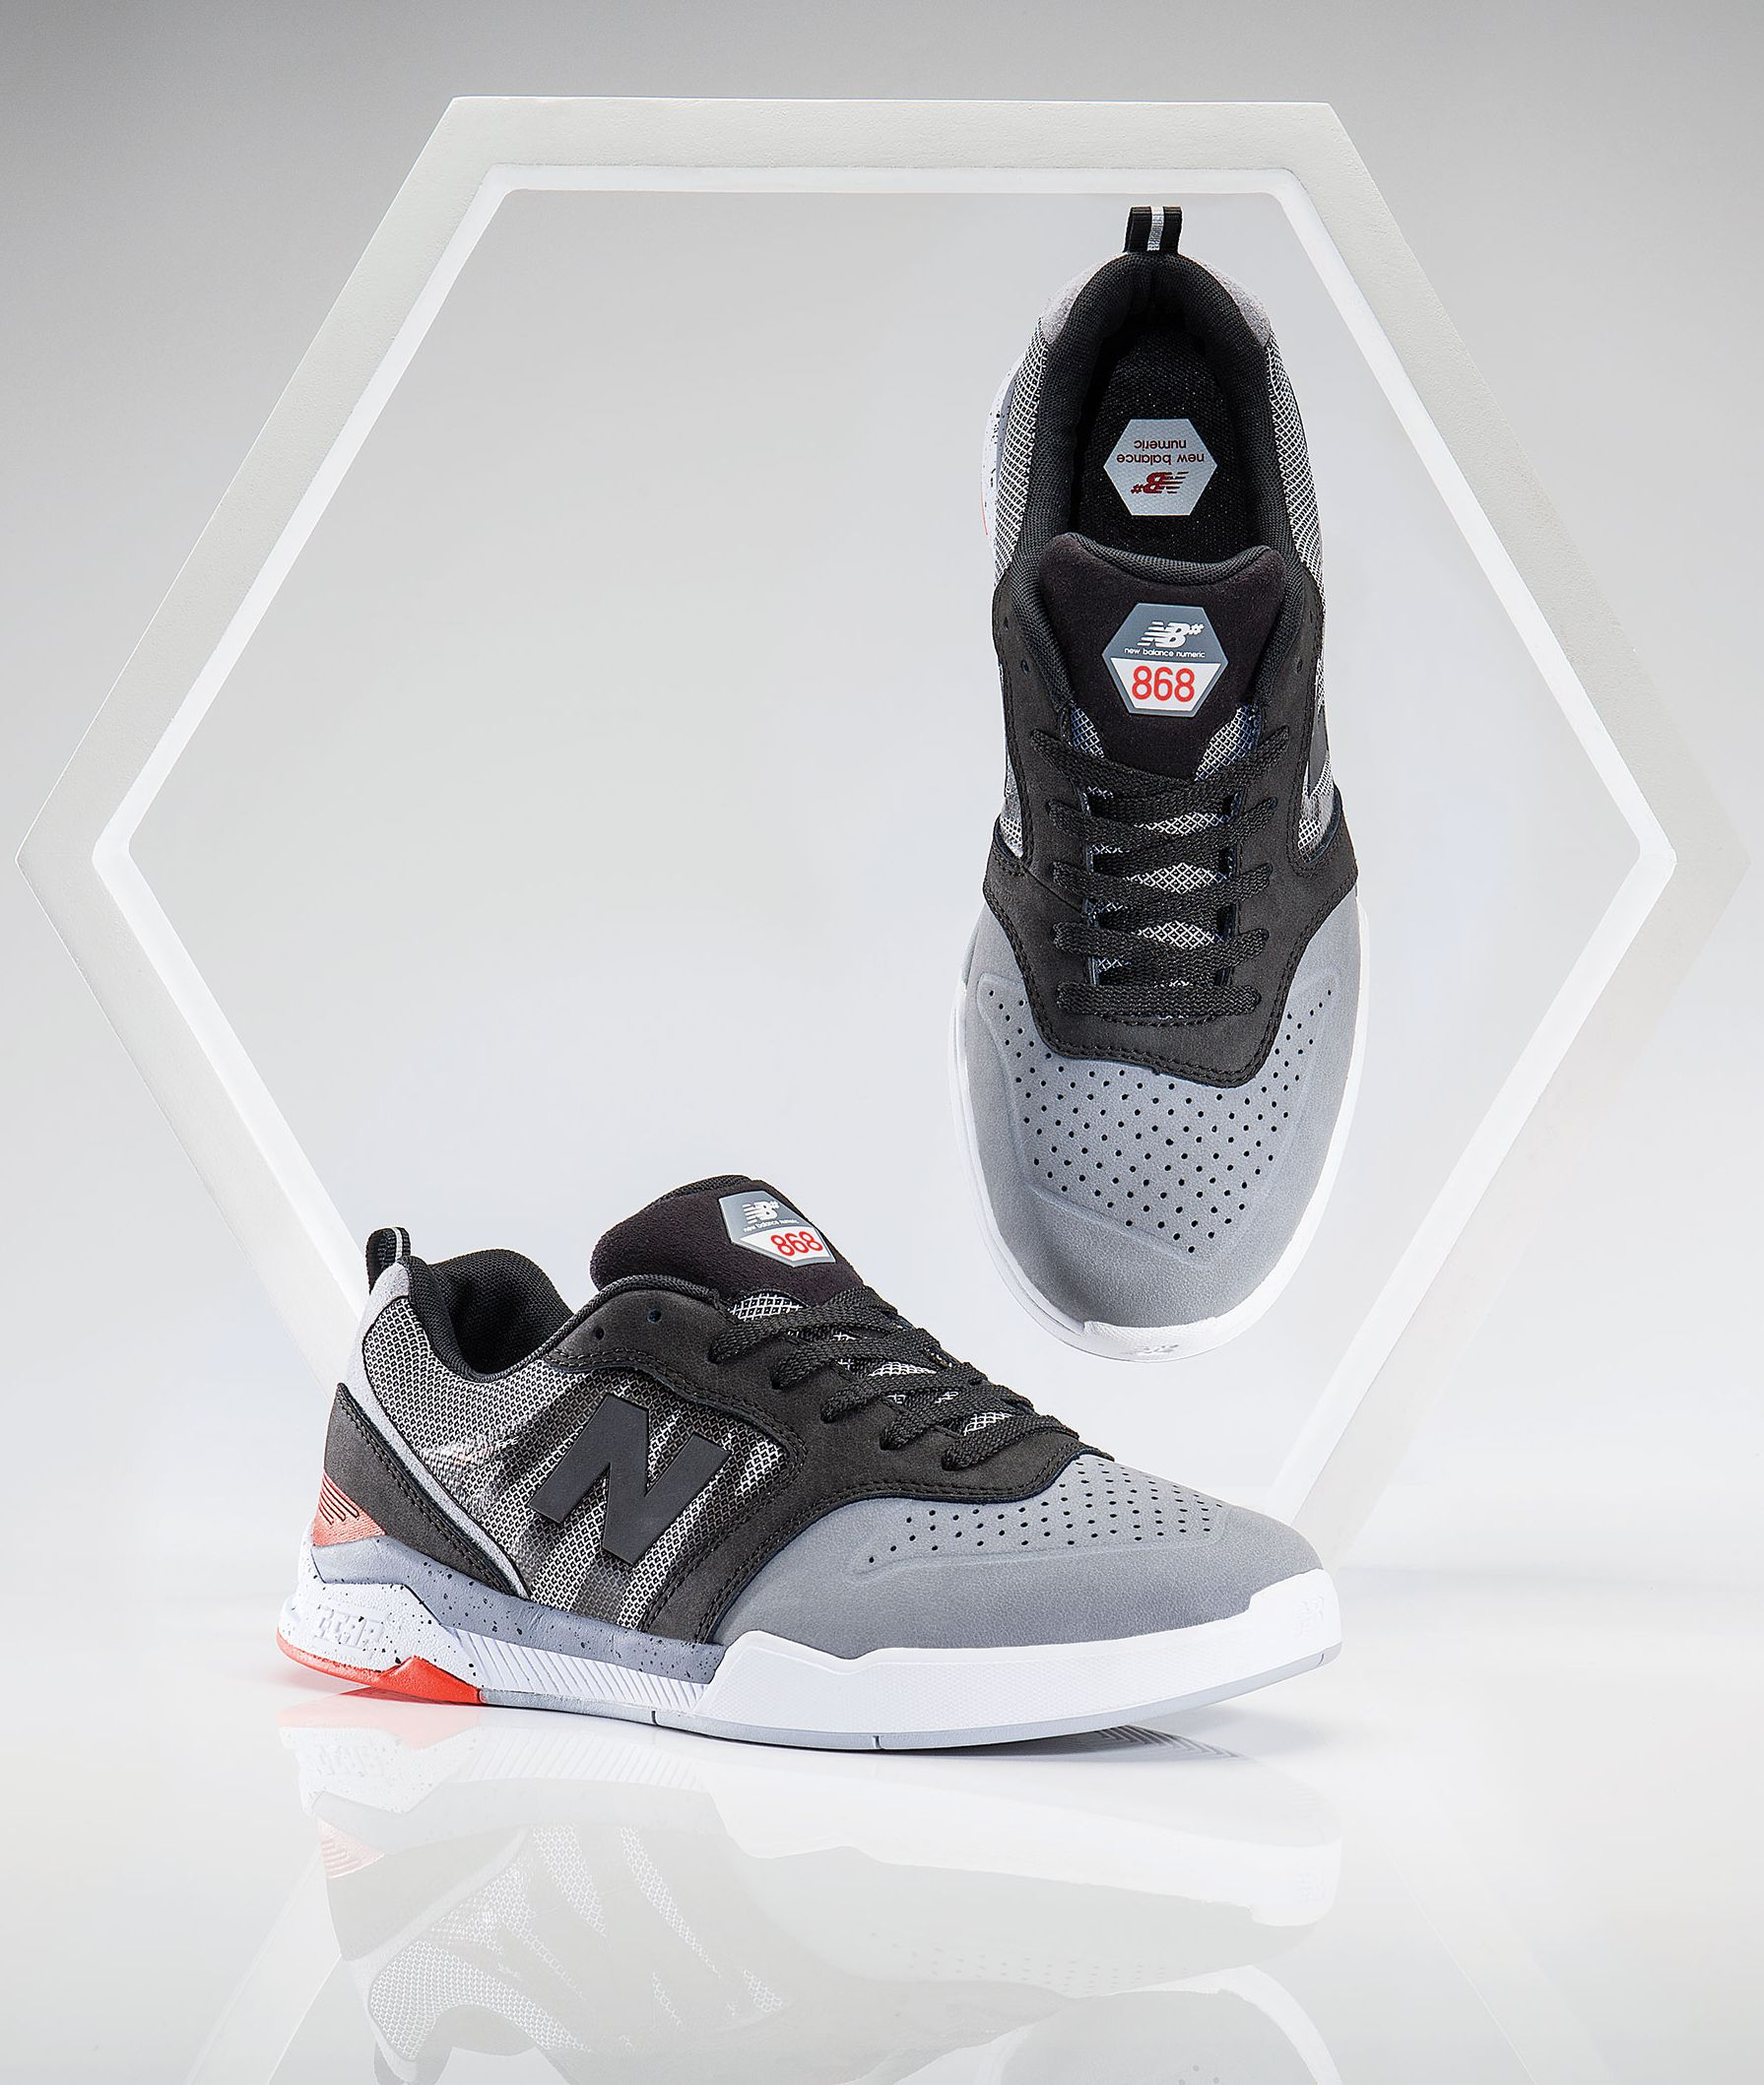 4f1a89ca70 Line Extension: New Balance brings skate line to Central Europe